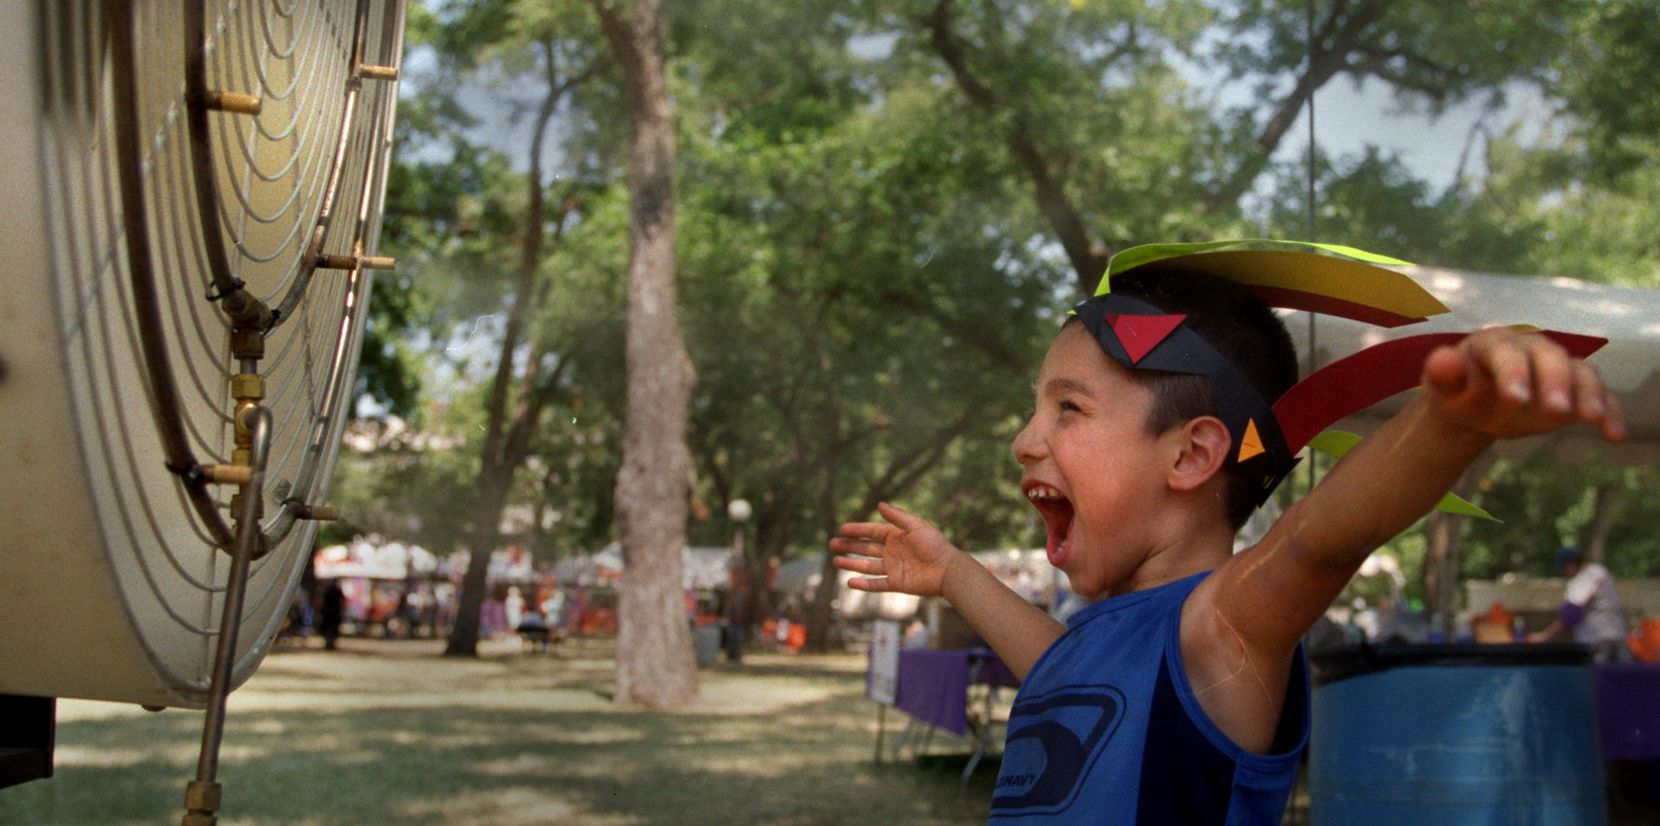 Edward Avila of Dallas cooled off in front of a fan at the Pepsi KidAround at Reverchon Park benefiting the Family Place in 2000.